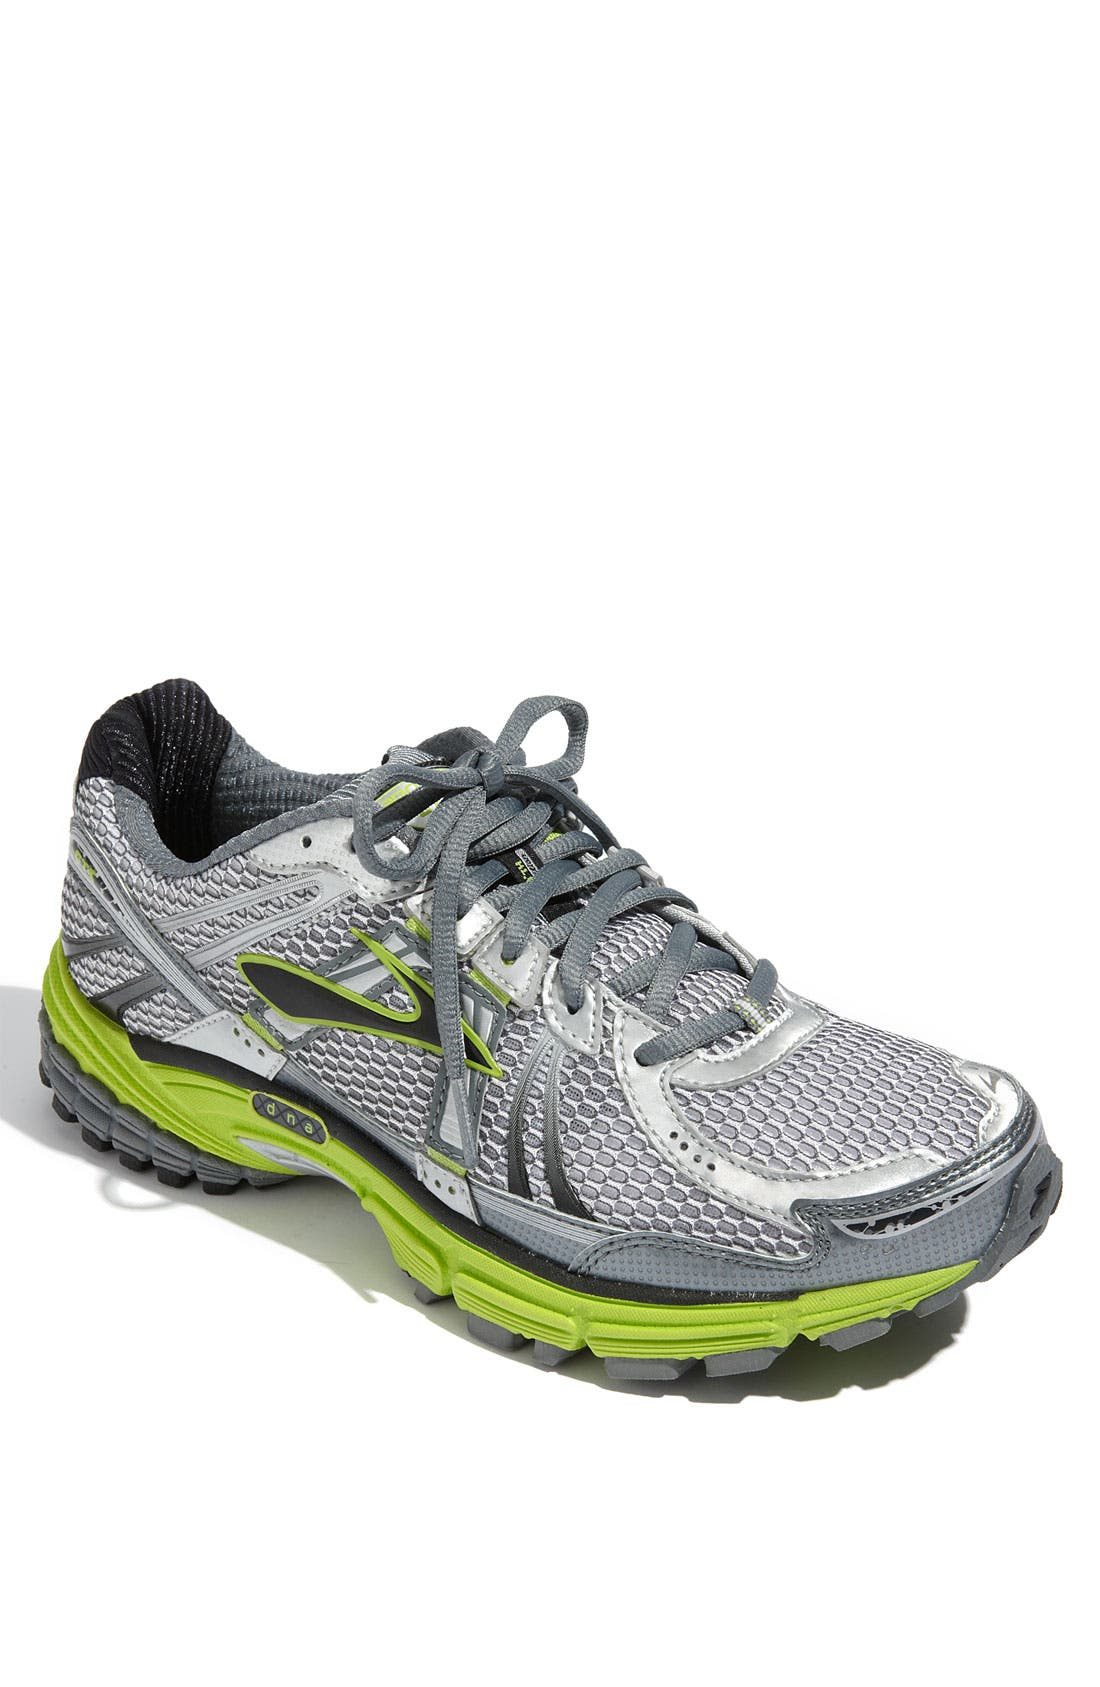 Main Image - Brooks 'Adrenaline GTS 12' Running Shoe (Men)